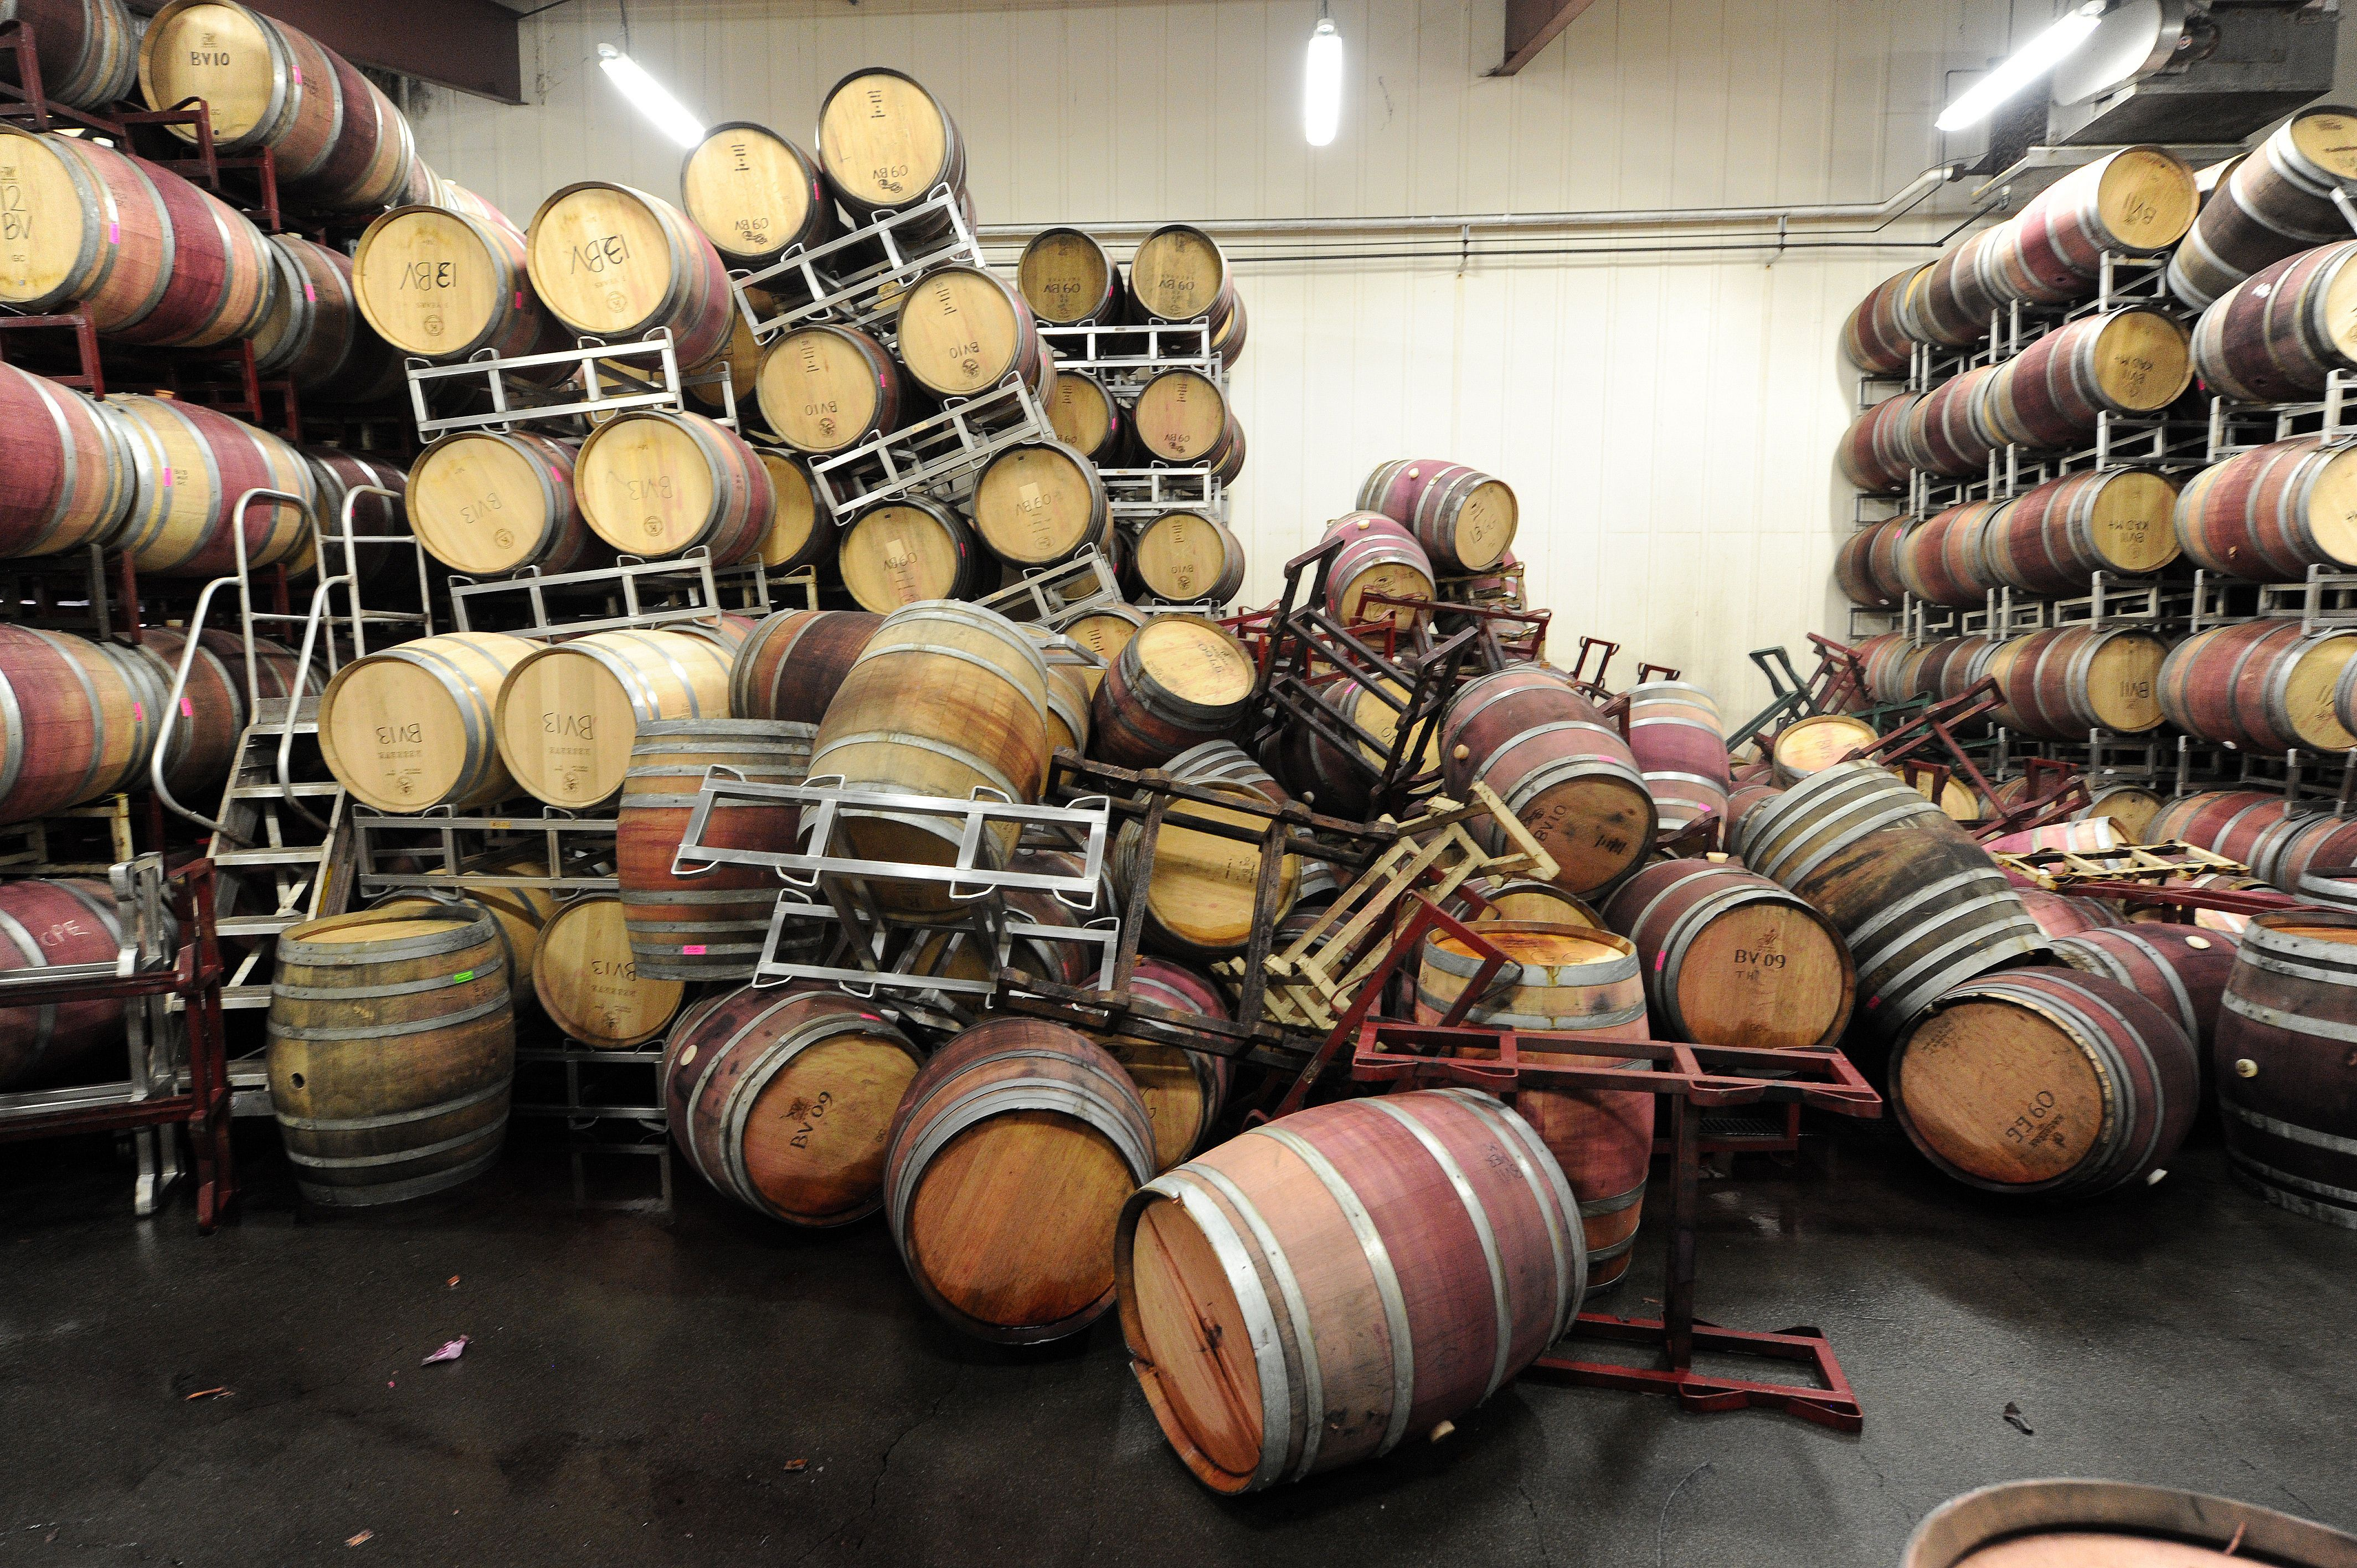 Earthquake Cost the Napa Wine Industry At Least $80 Million